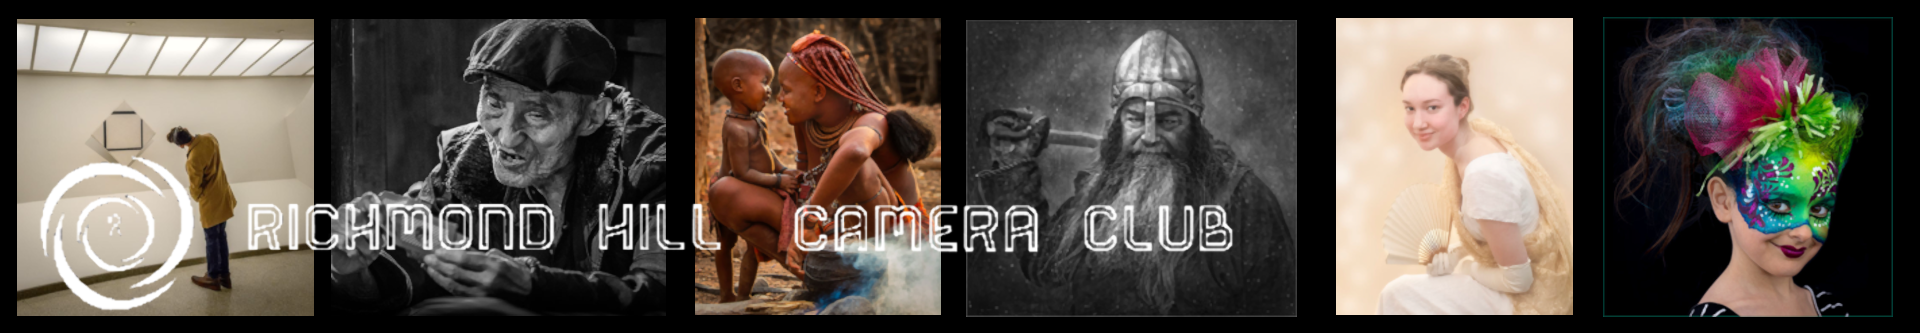 Richmond Hill Camera Club